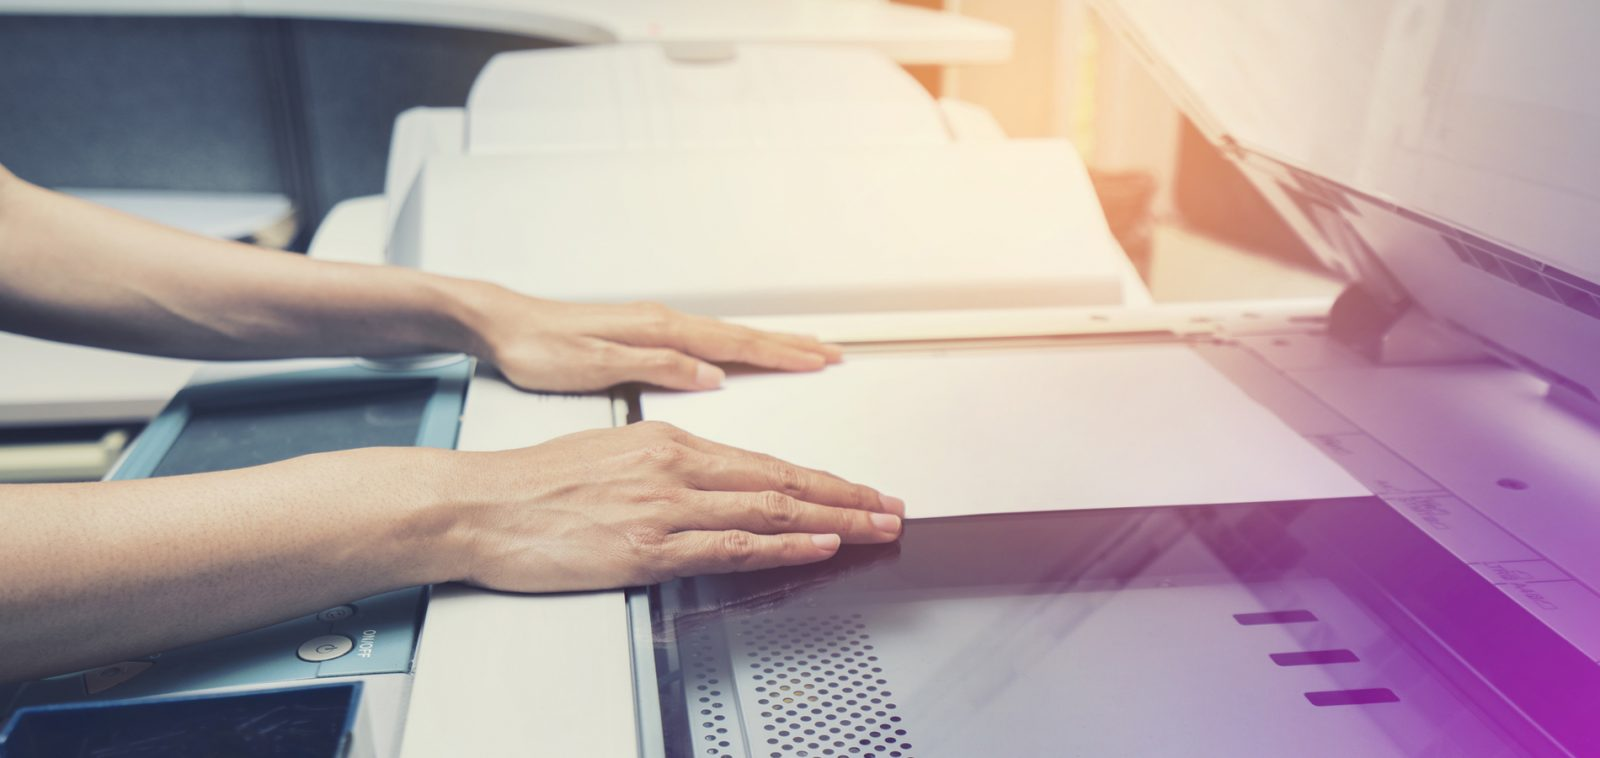 Learn all about the advantages of using a document scanning service!